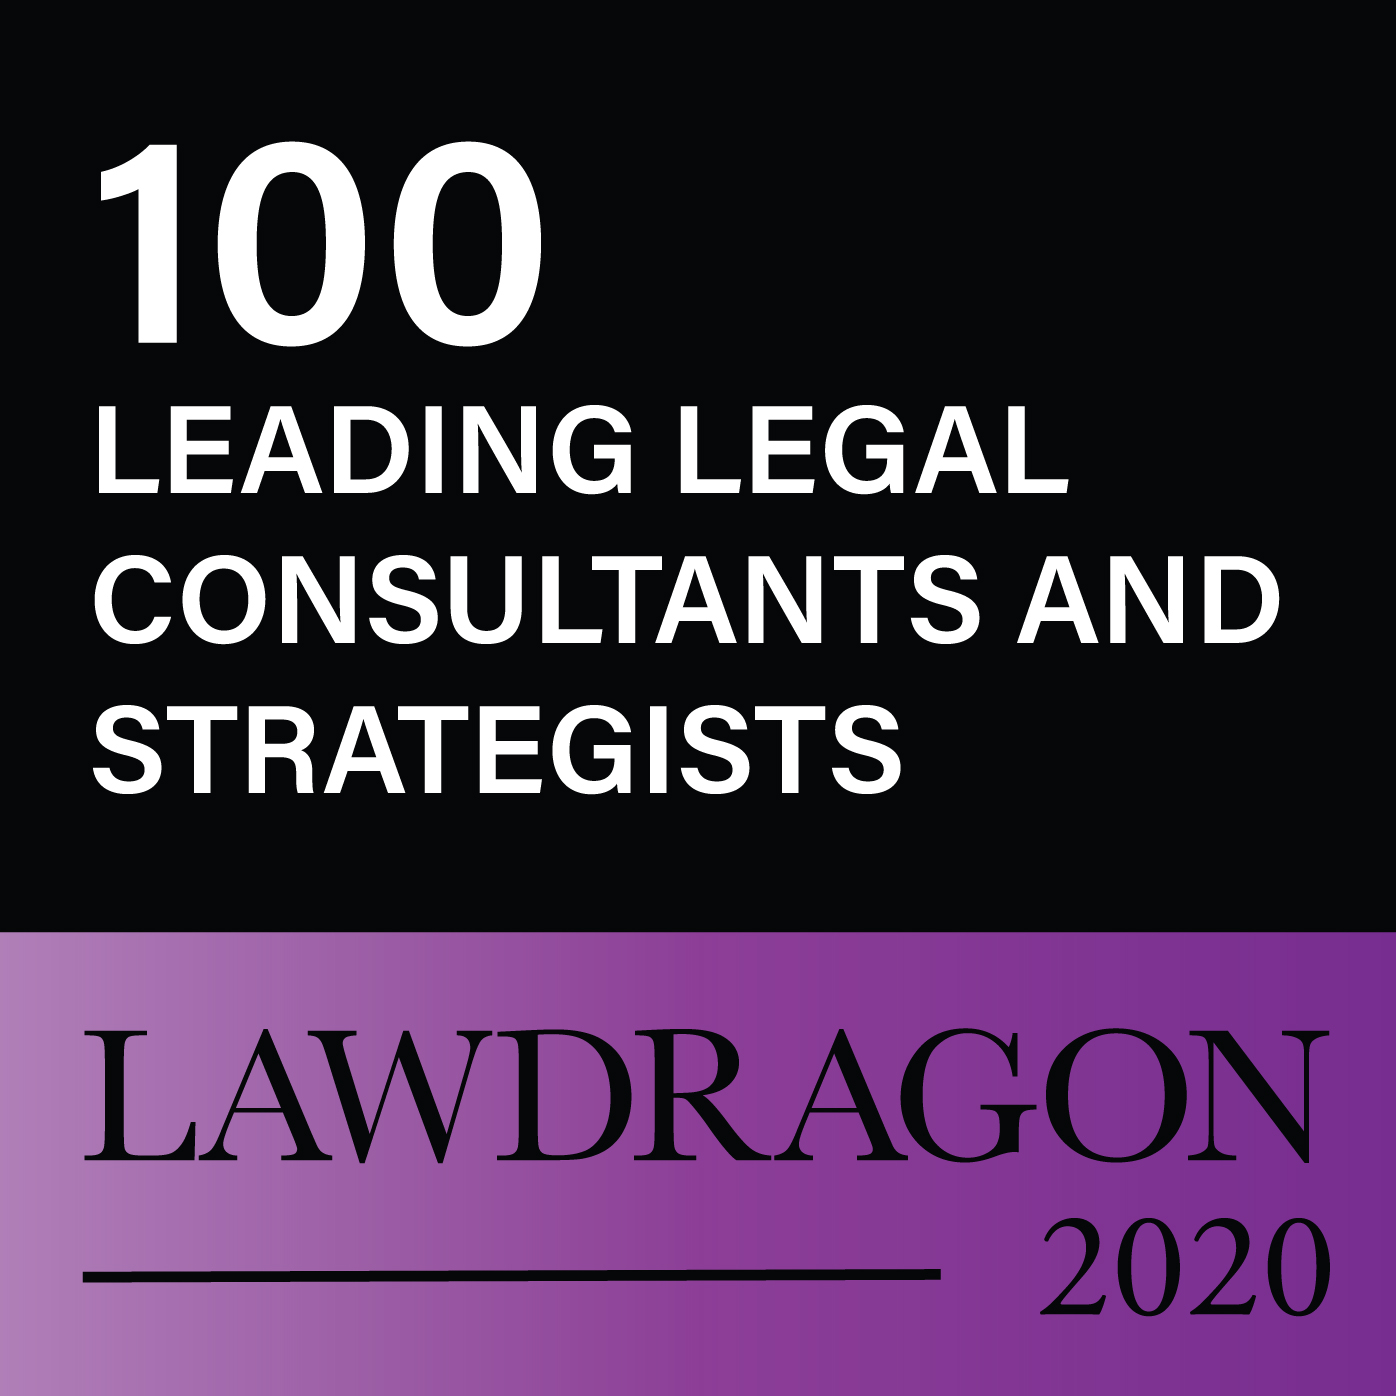 2020 Leading Legal Consultants and Strategists